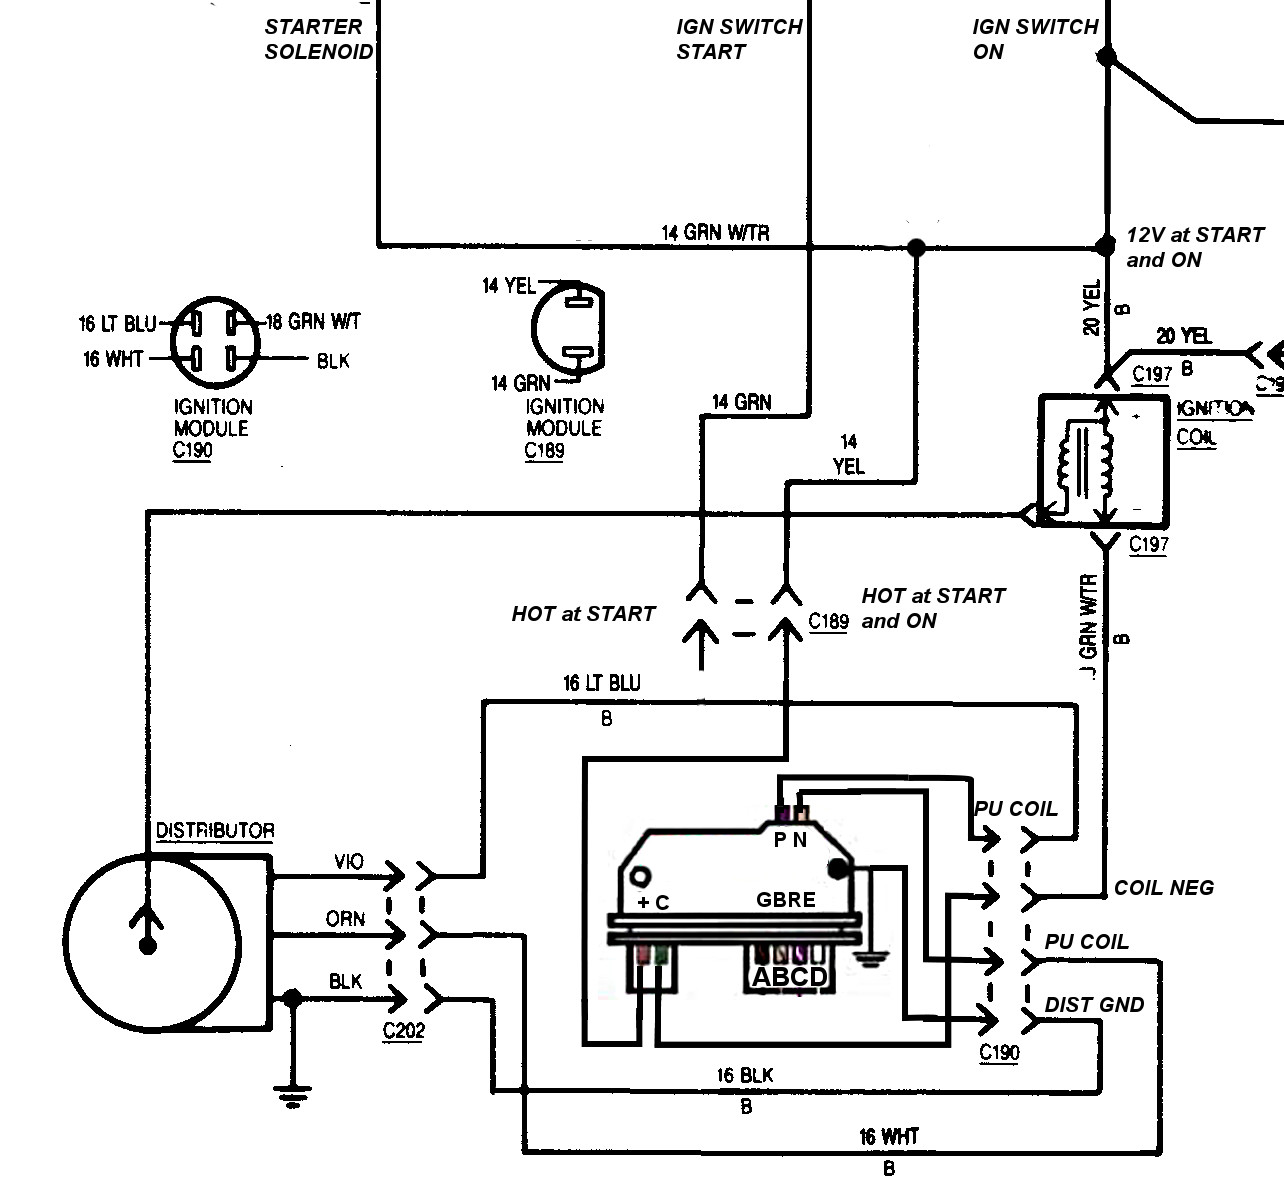 86 chevy hei wiring diagram wiring diagram third level 1984 chevy hei distributor wiring harness hei gm wiring diagram for 1980 [ 1284 x 1178 Pixel ]